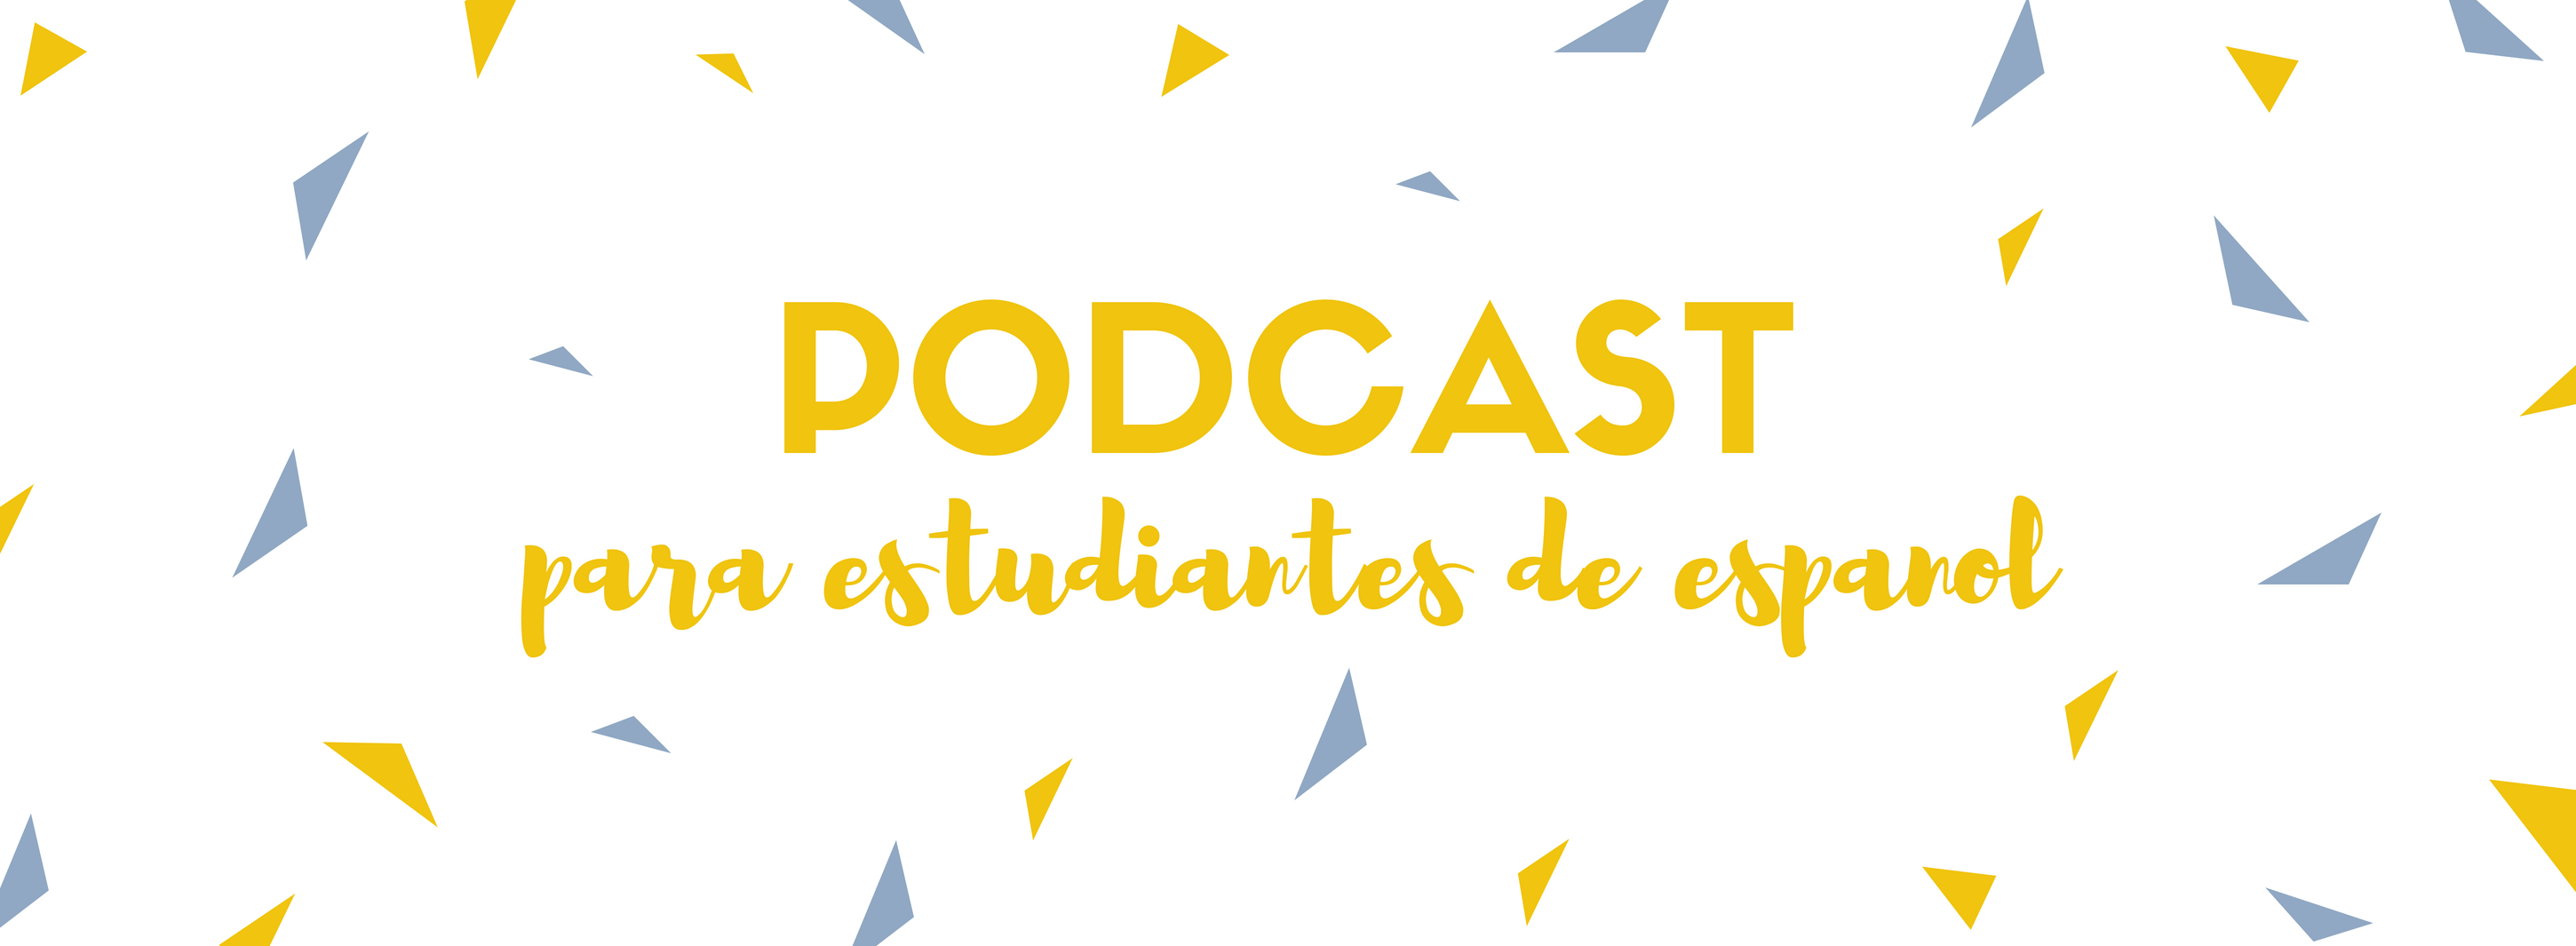 Podcast for learning spanish